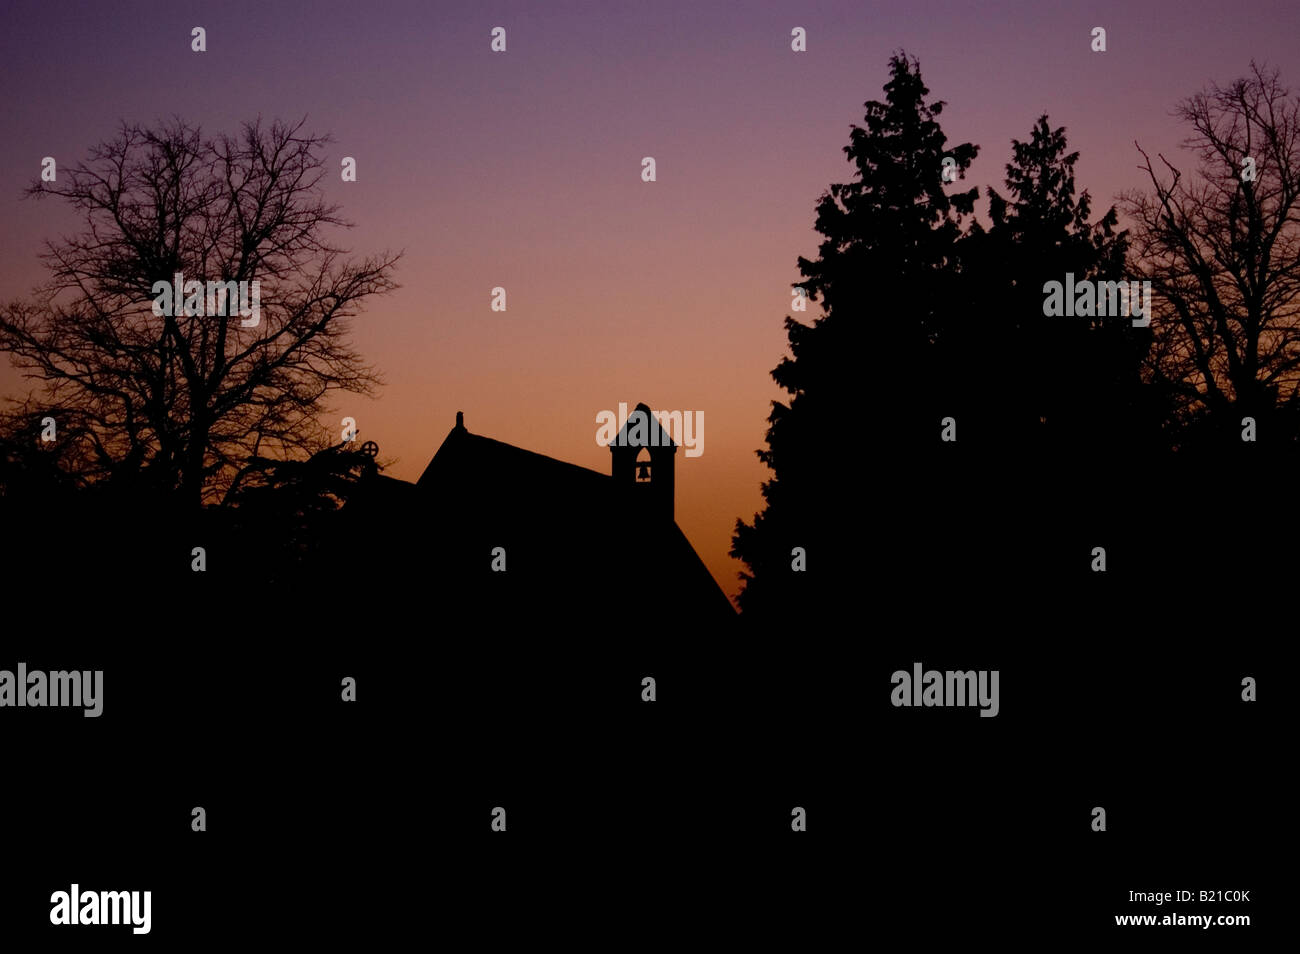 Sunset church sillouette trees - Stock Image